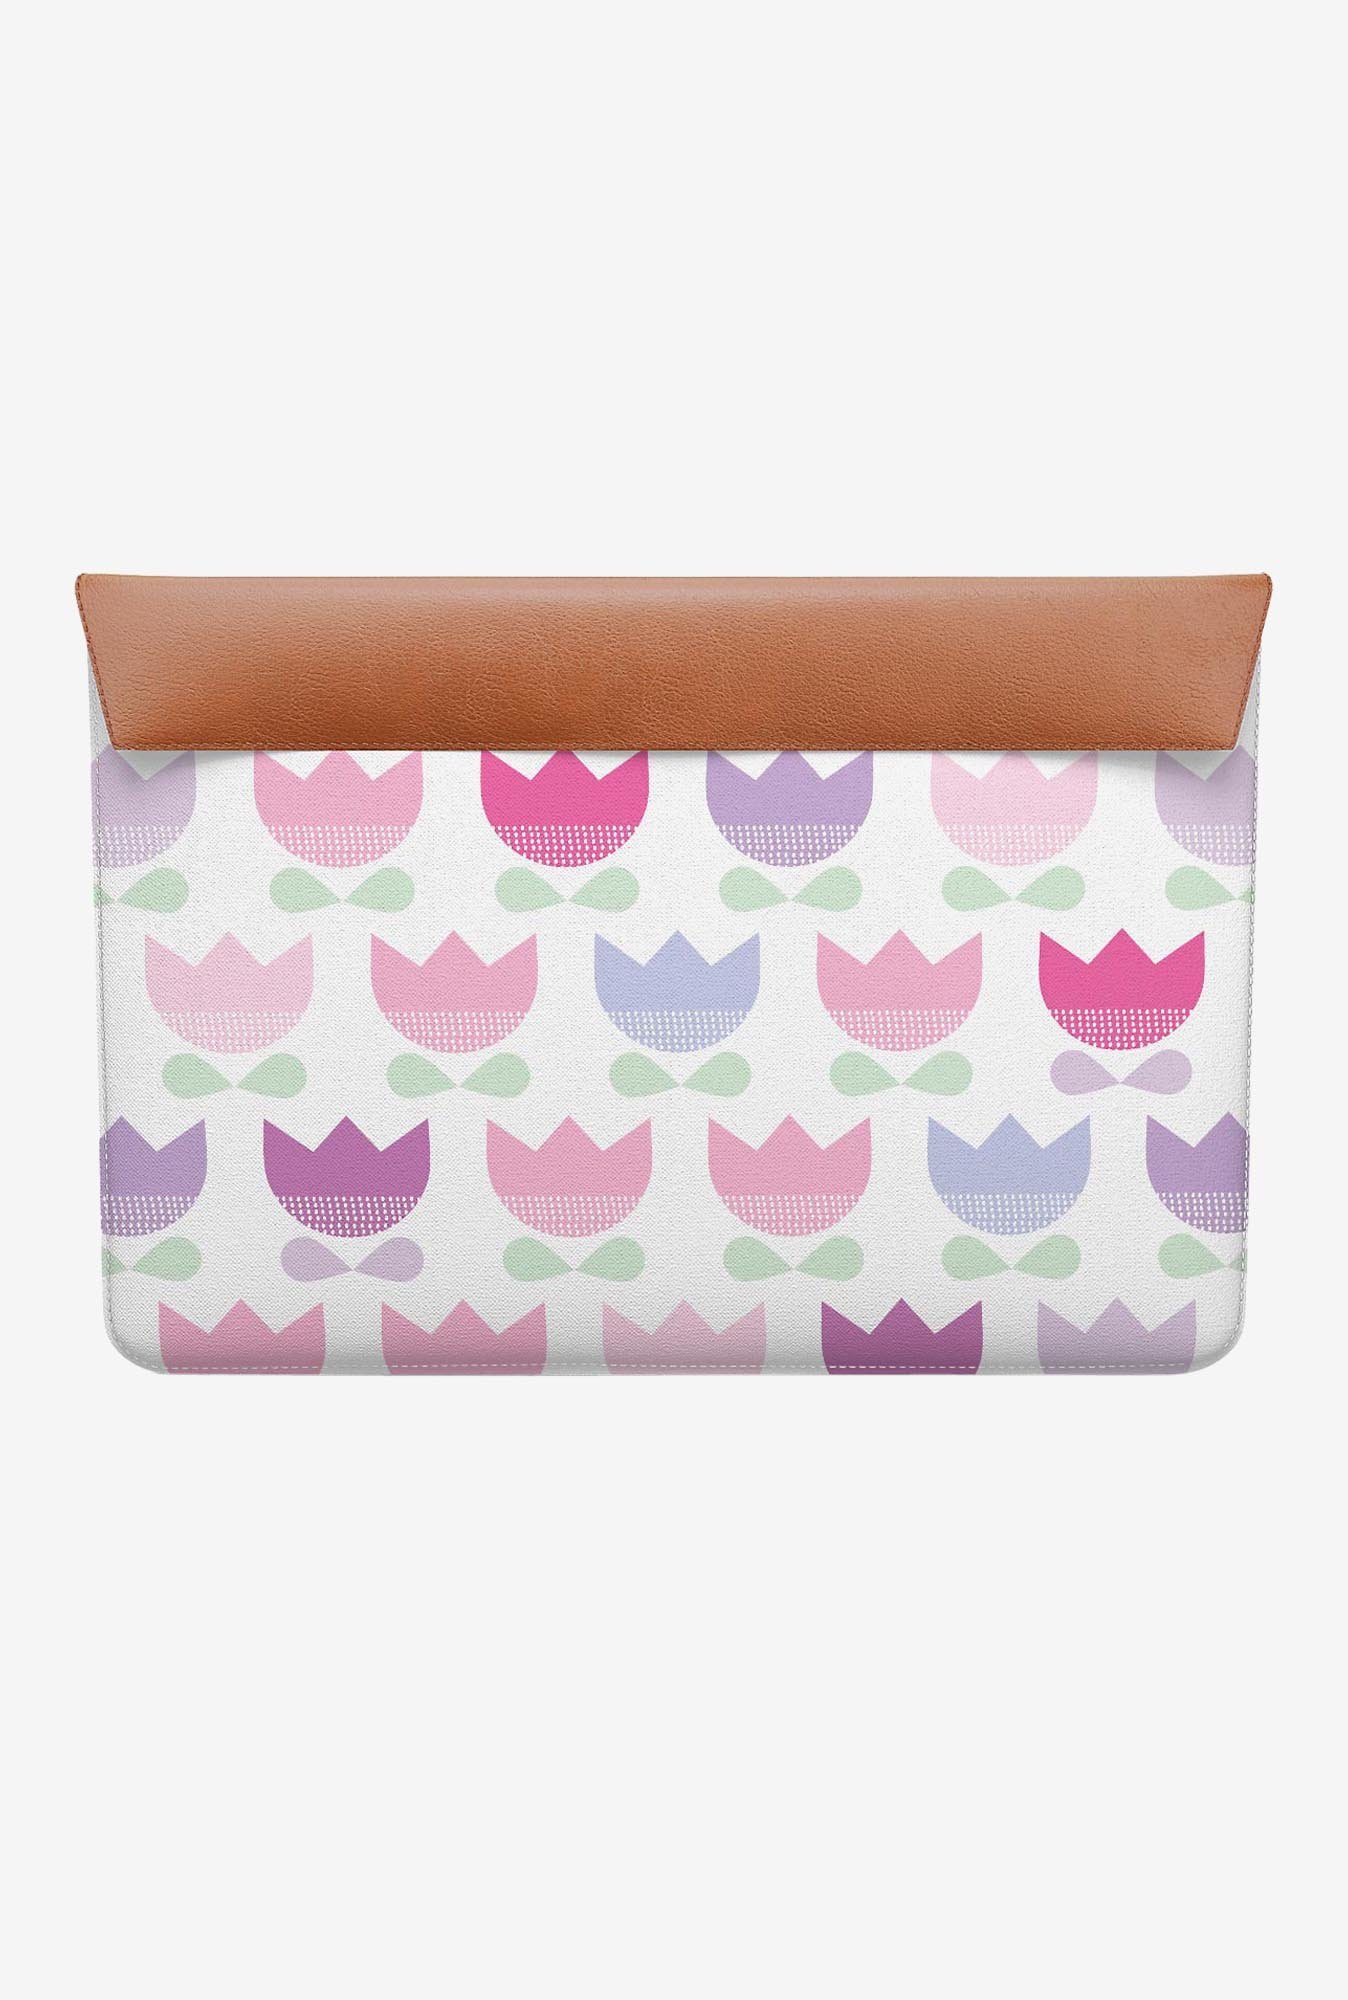 "DailyObjects Spring Tulips MacBook Air 13"" Envelope Sleeve"